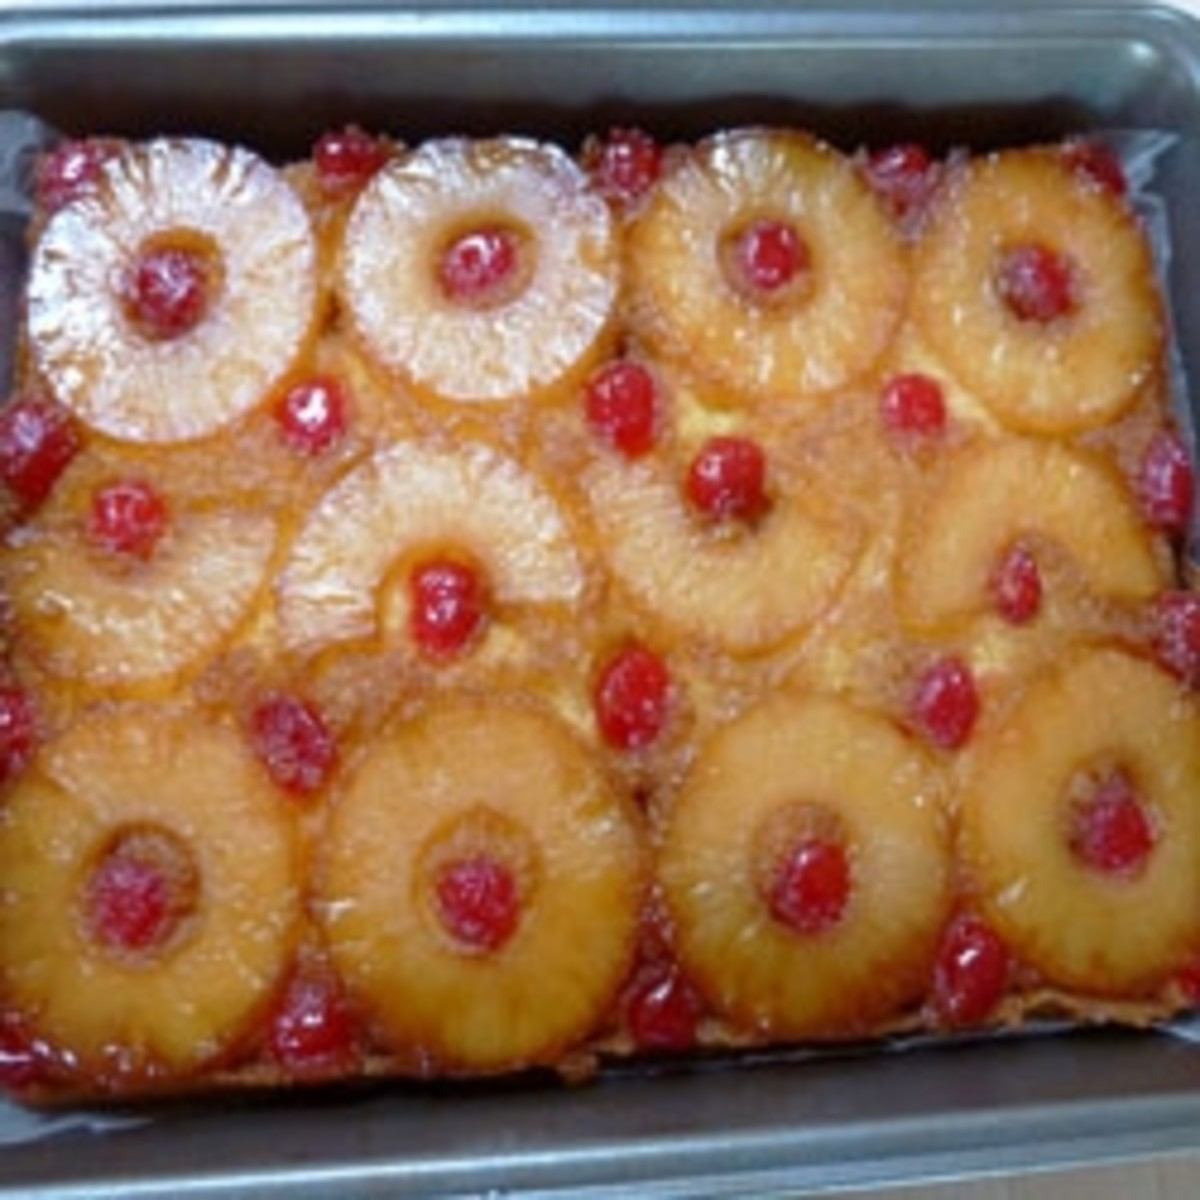 Upside-down Pineapple Cake with pudding